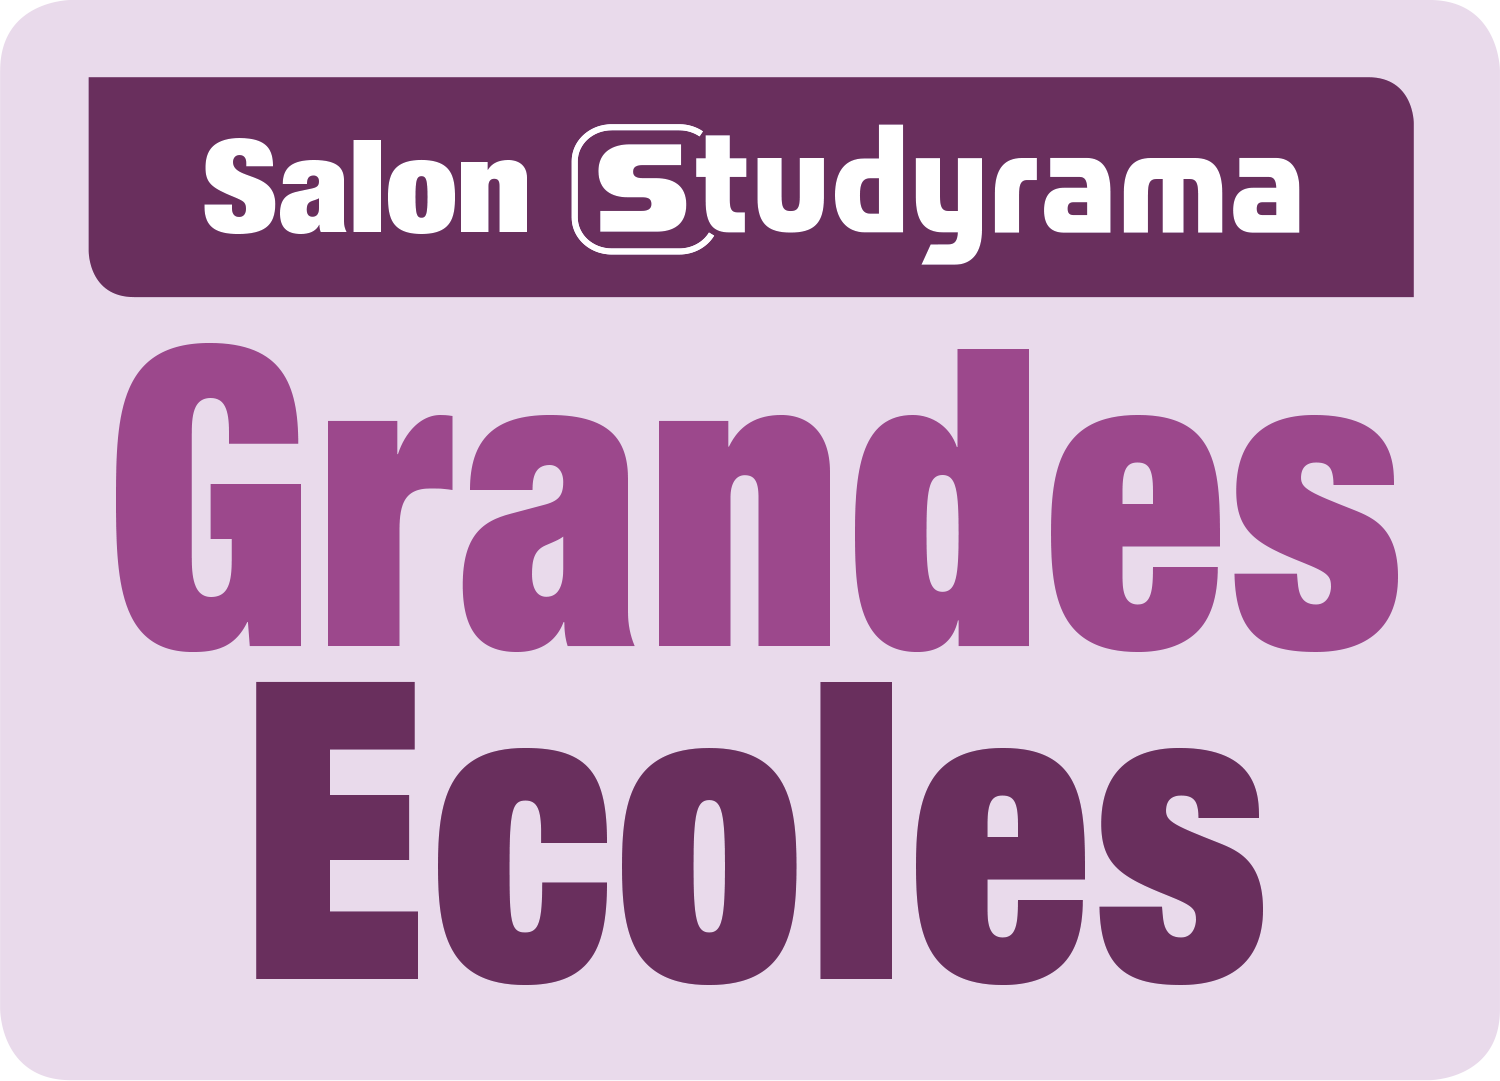 Ecomnews le 4 me salon studyrama des grandes coles for Salon porte de champerret studyrama